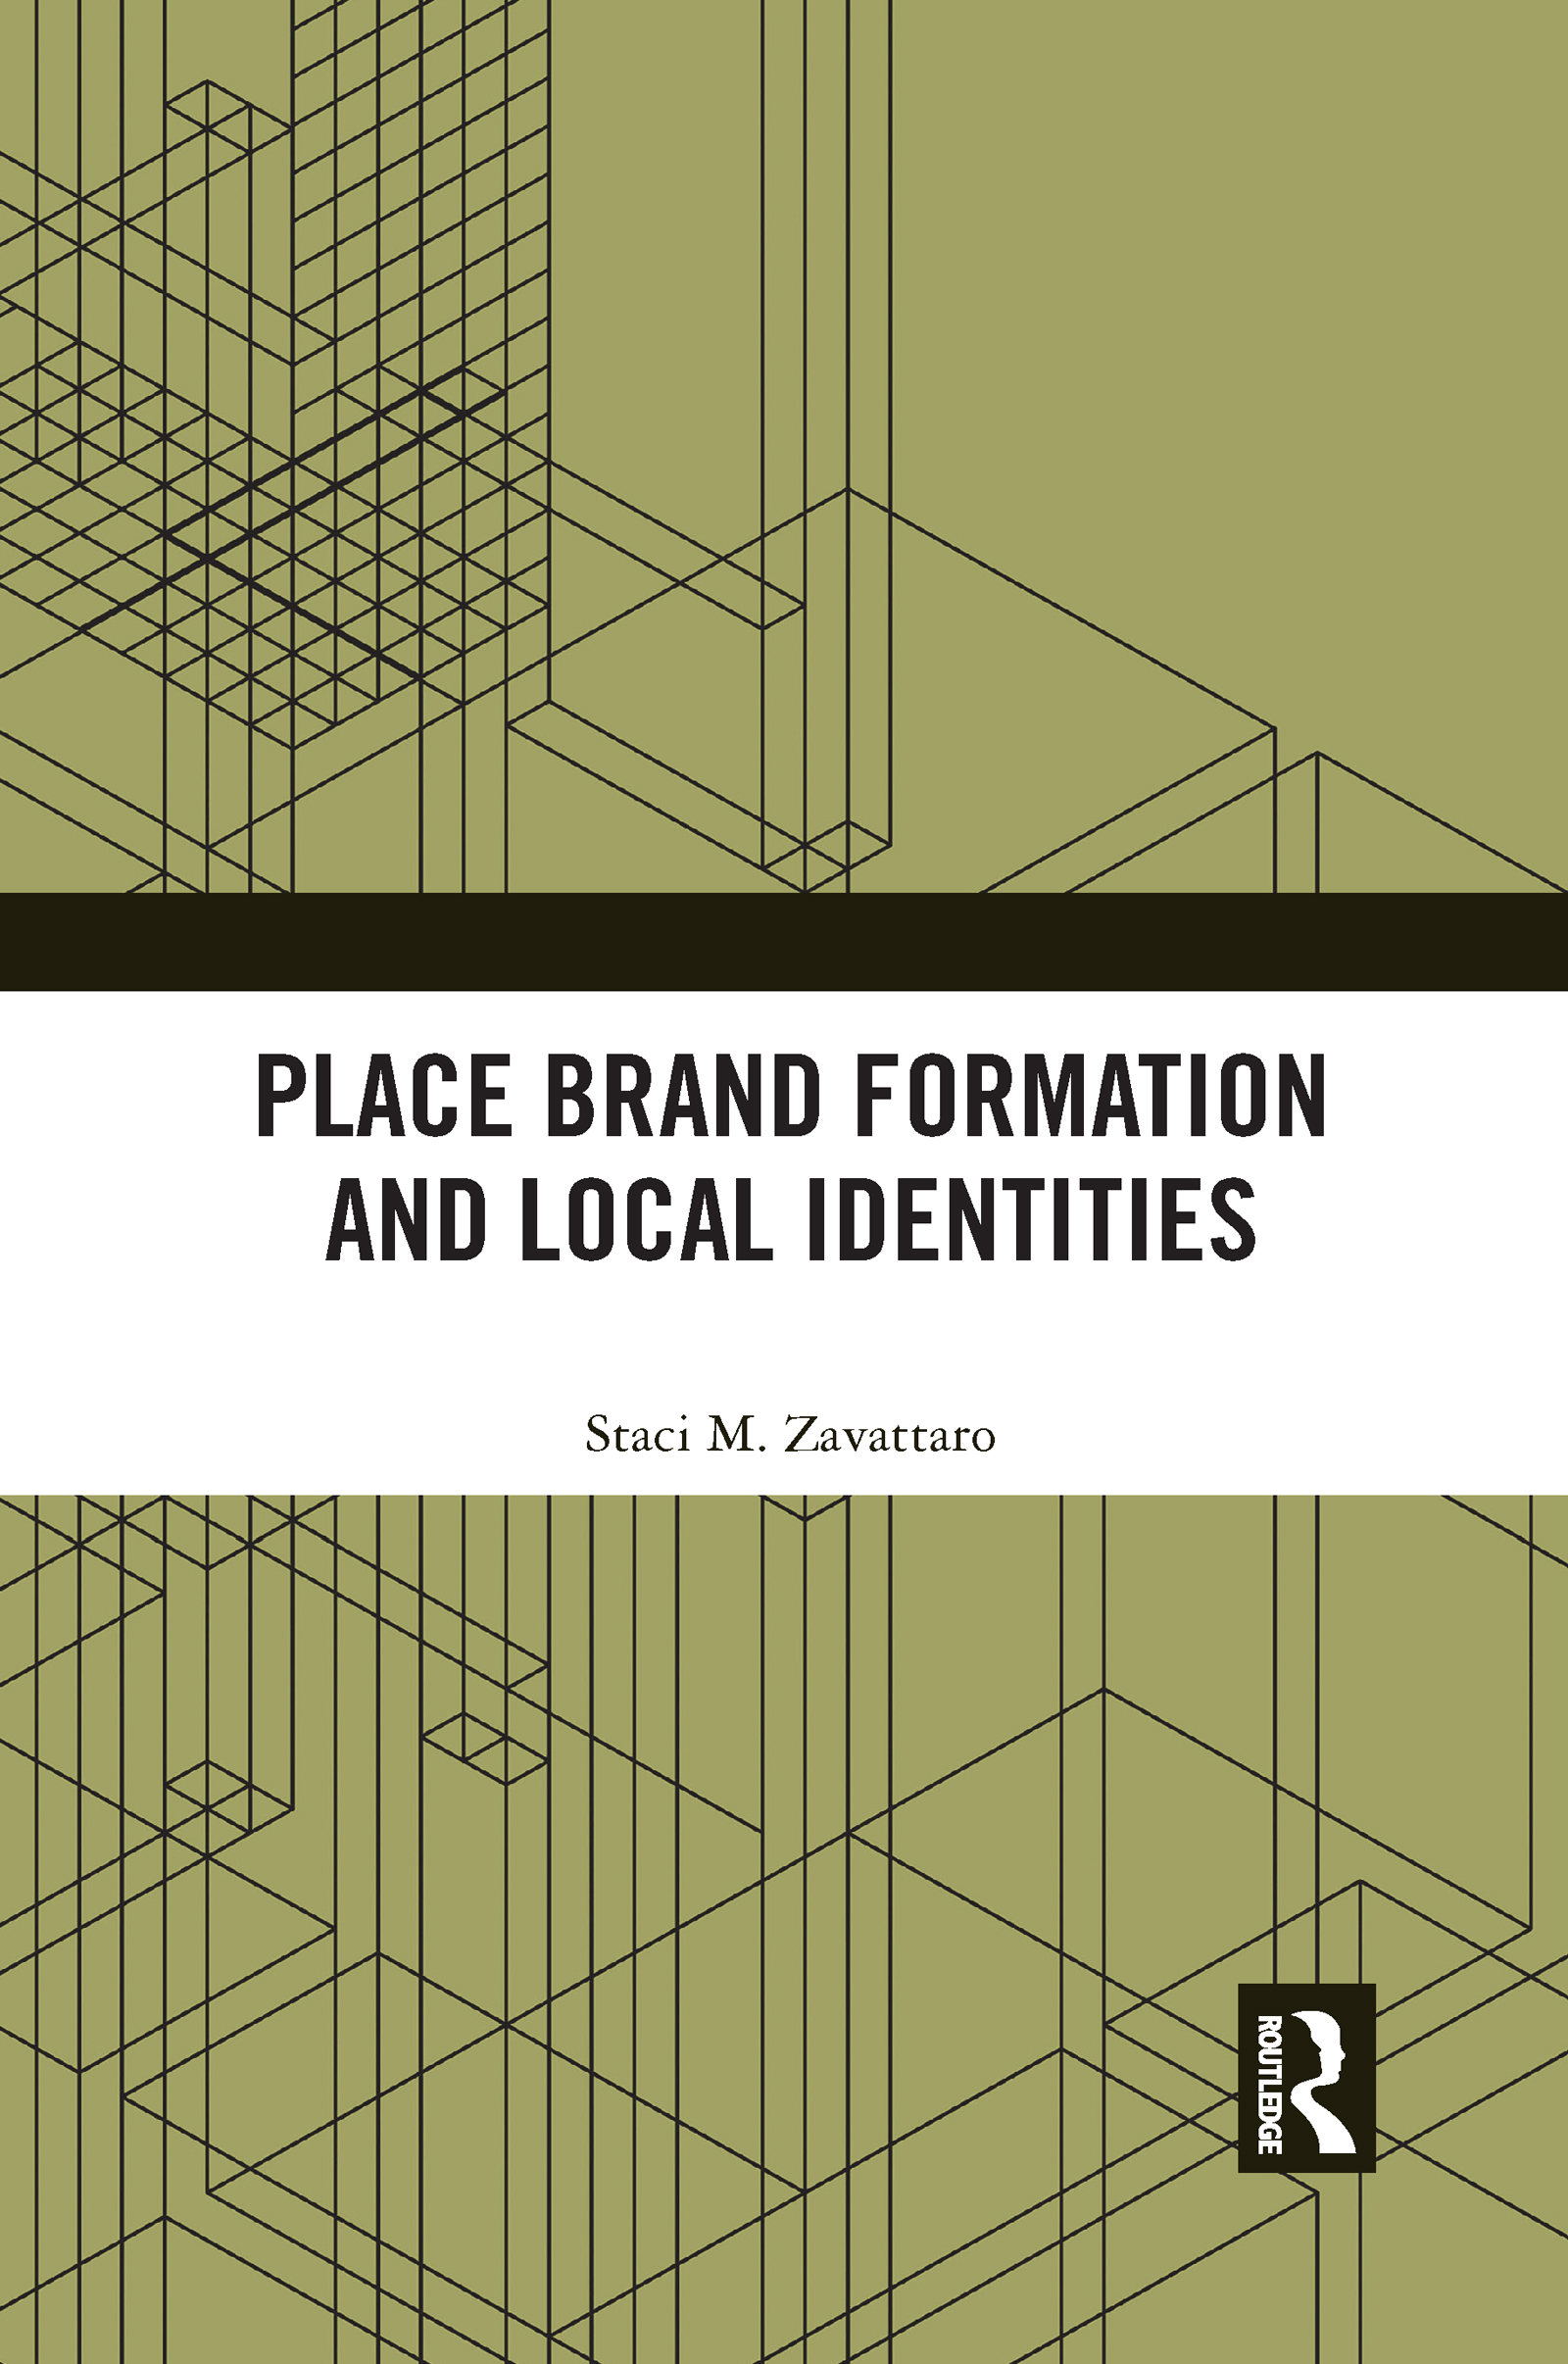 Place Brand Formation and Local Identities